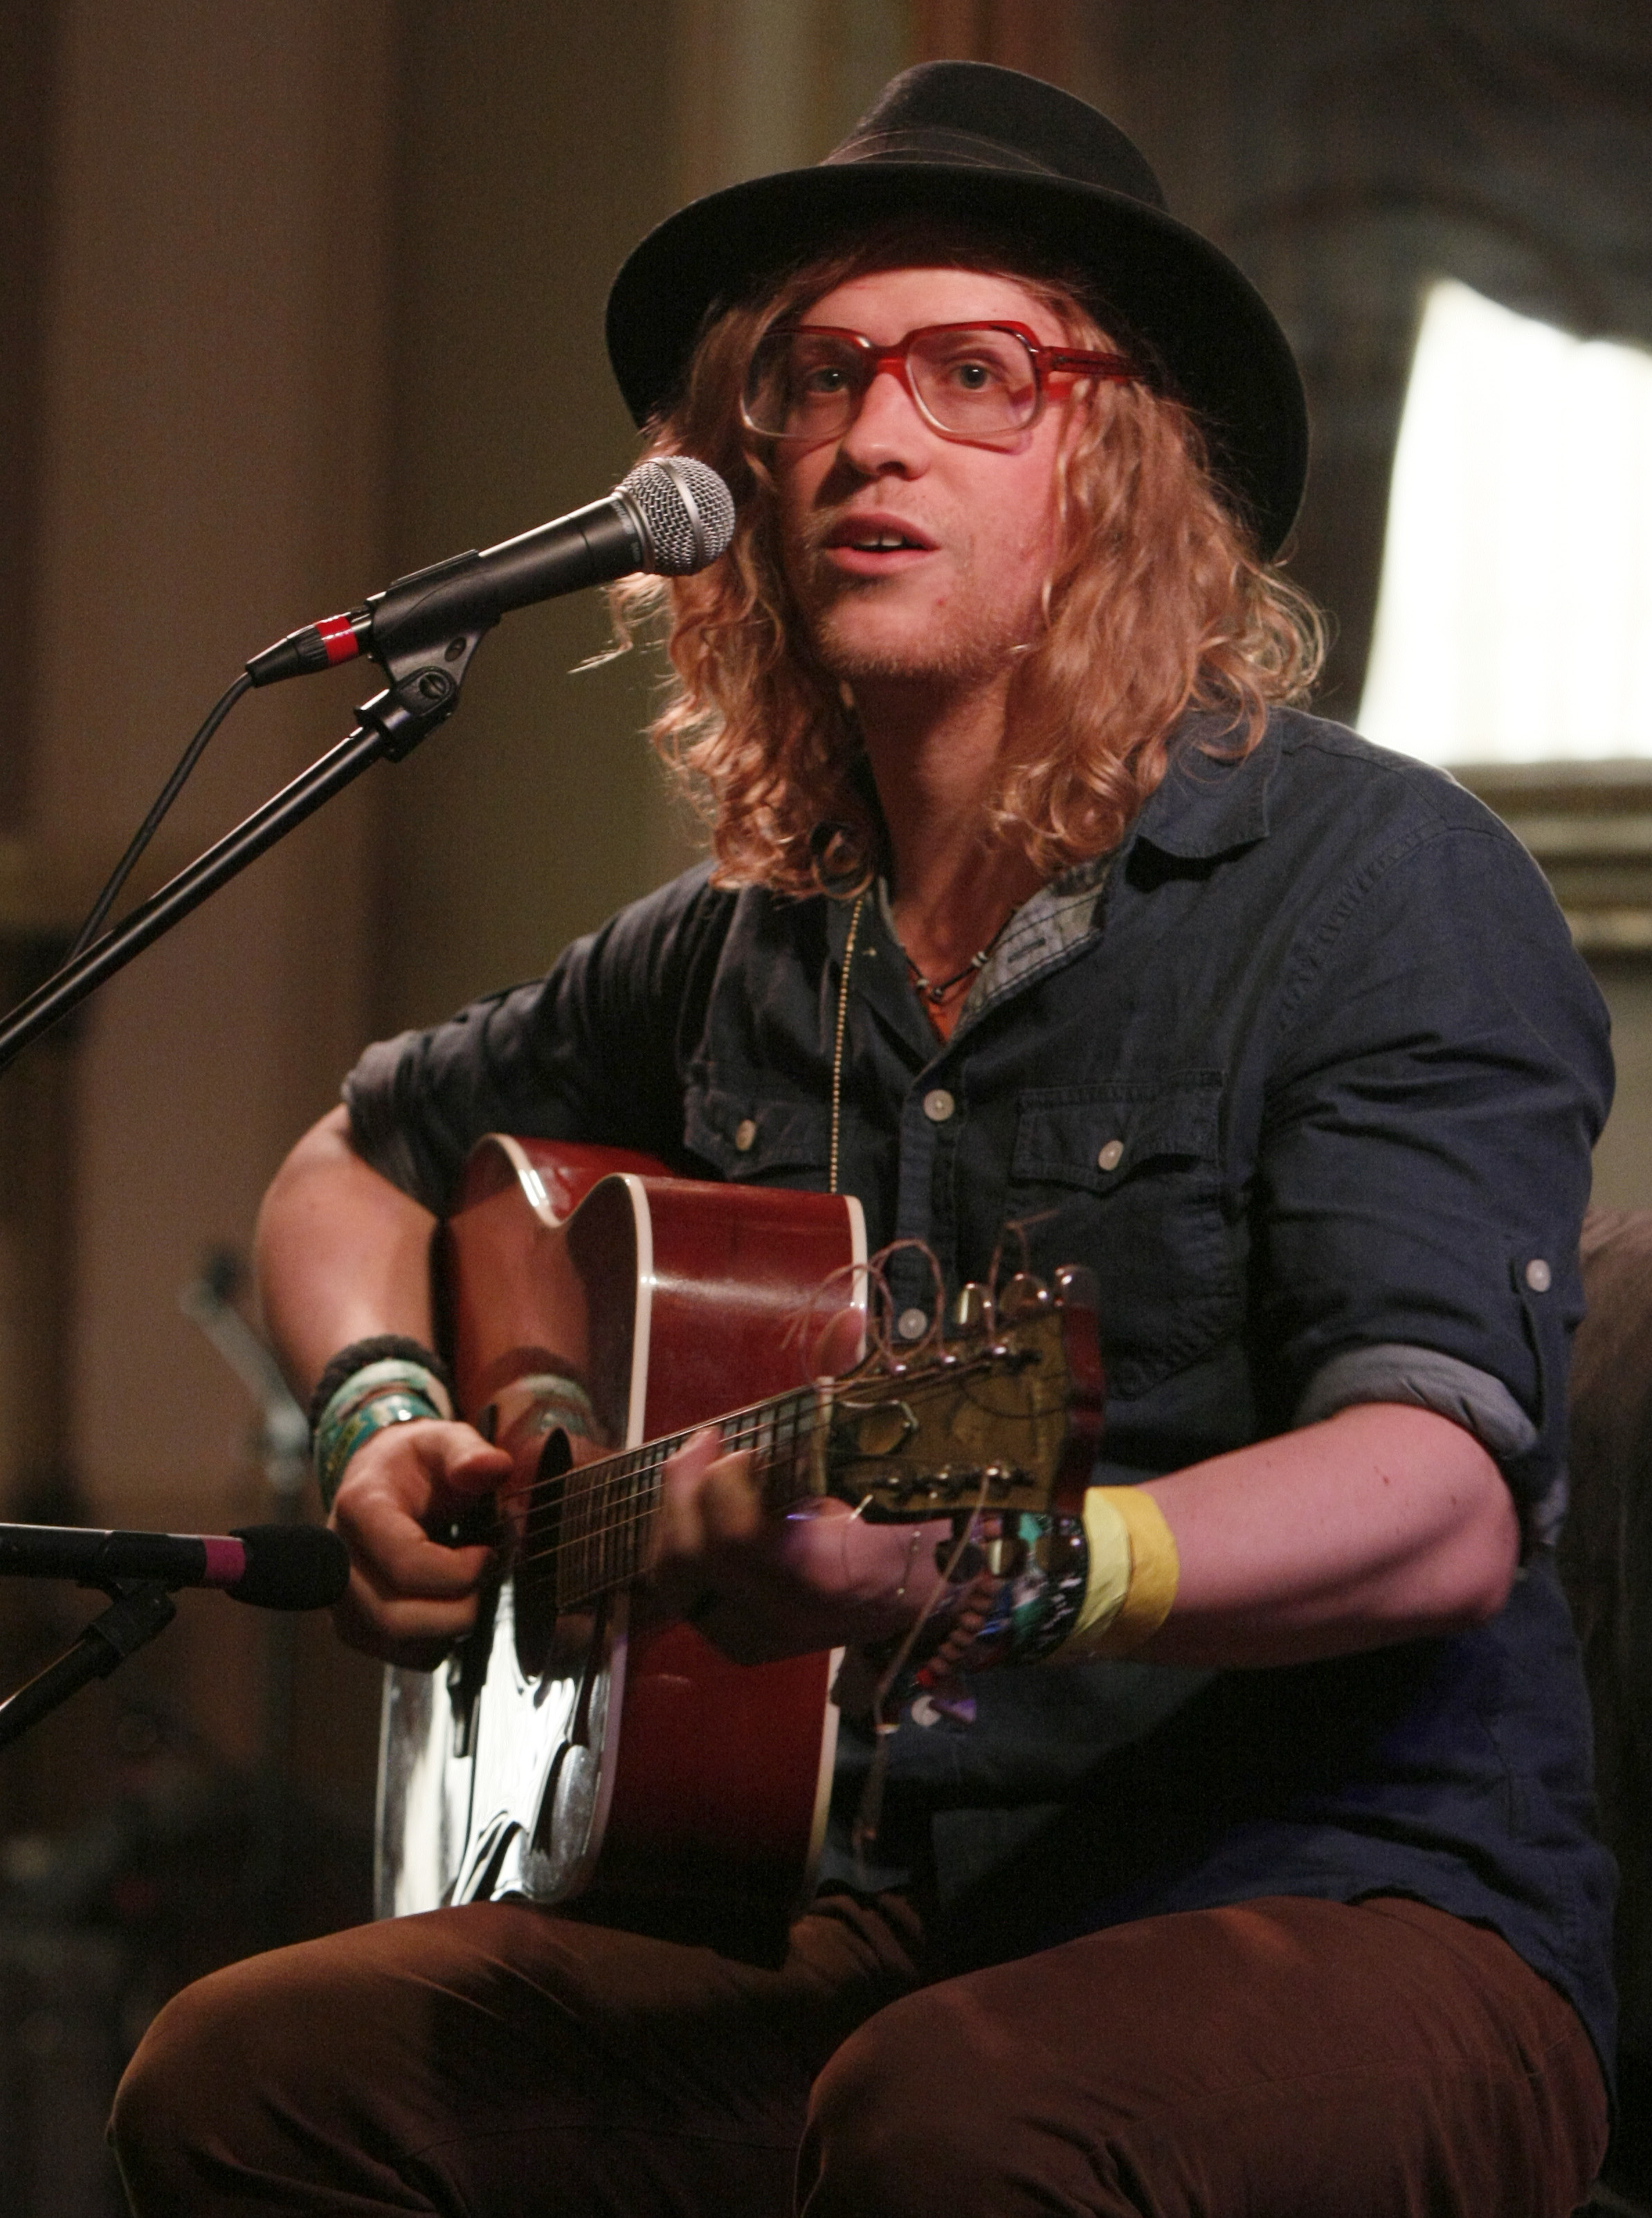 Allen Stone's soul has local roots | The Spokesman-Review